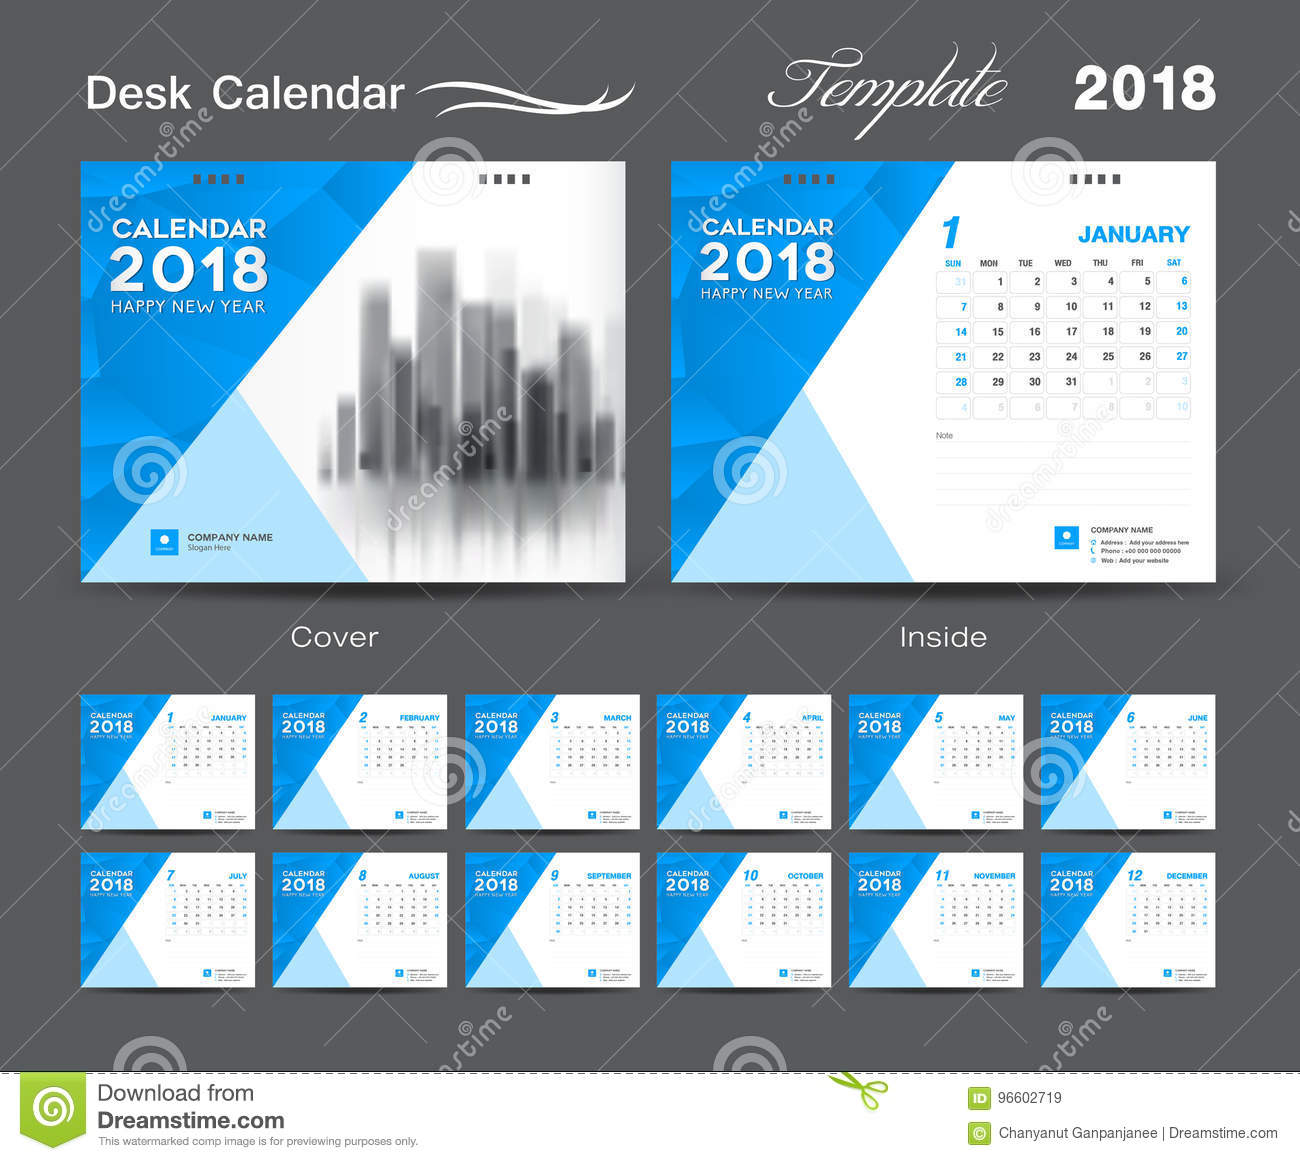 Calendar Cover Design 2014 : Desk calendar template layout design blue cover